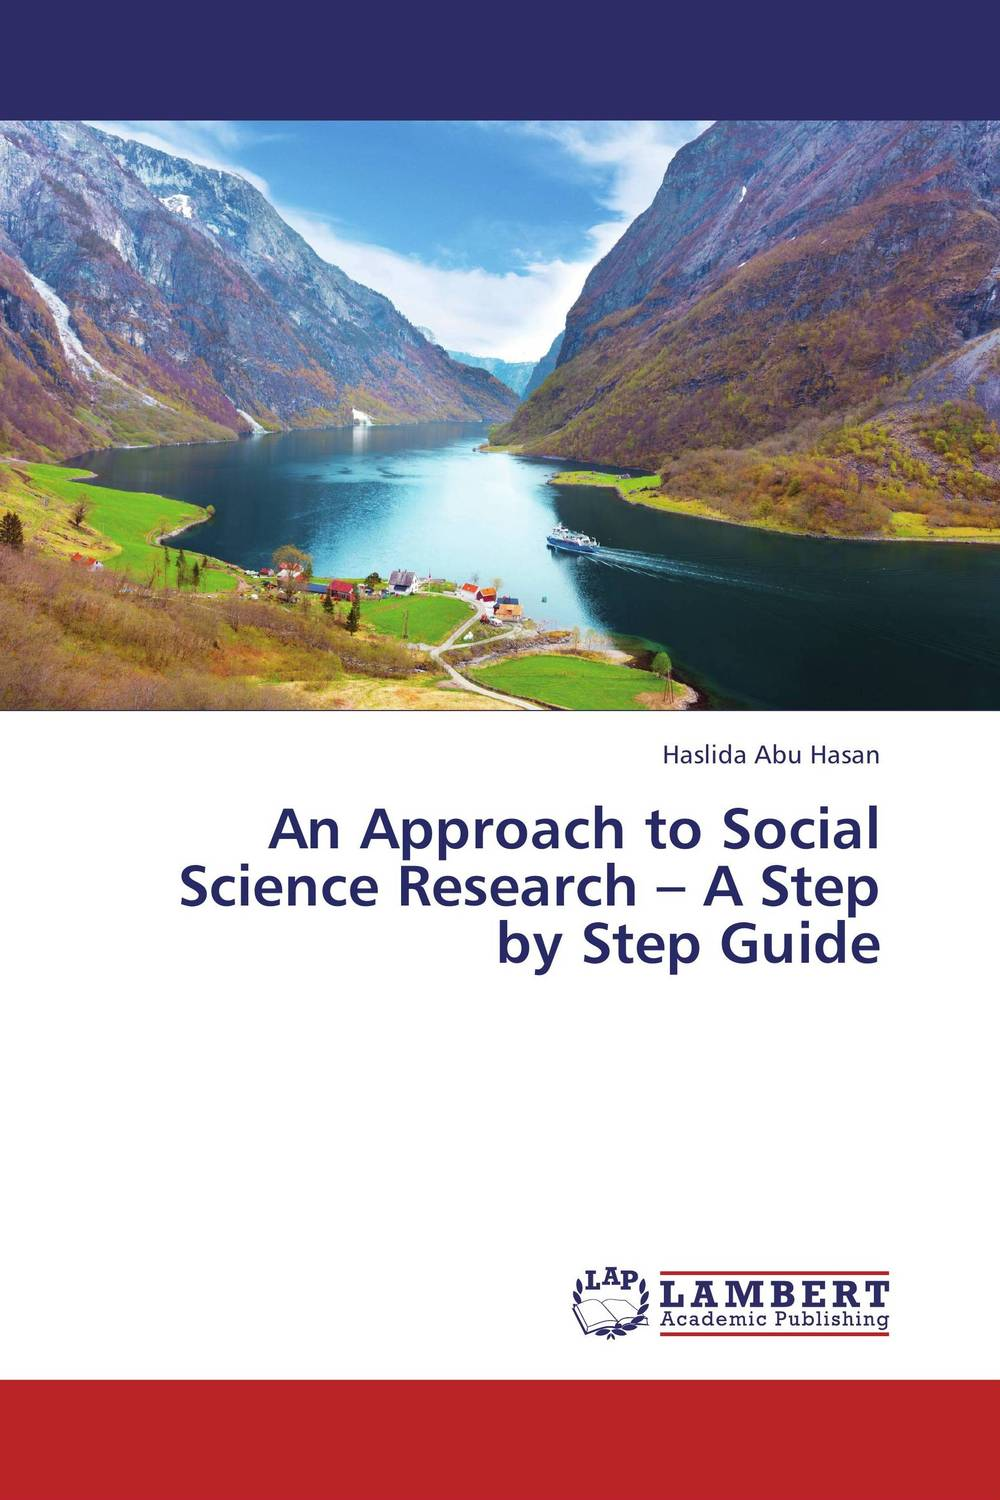 An Approach to Social Science Research – A Step by Step Guide